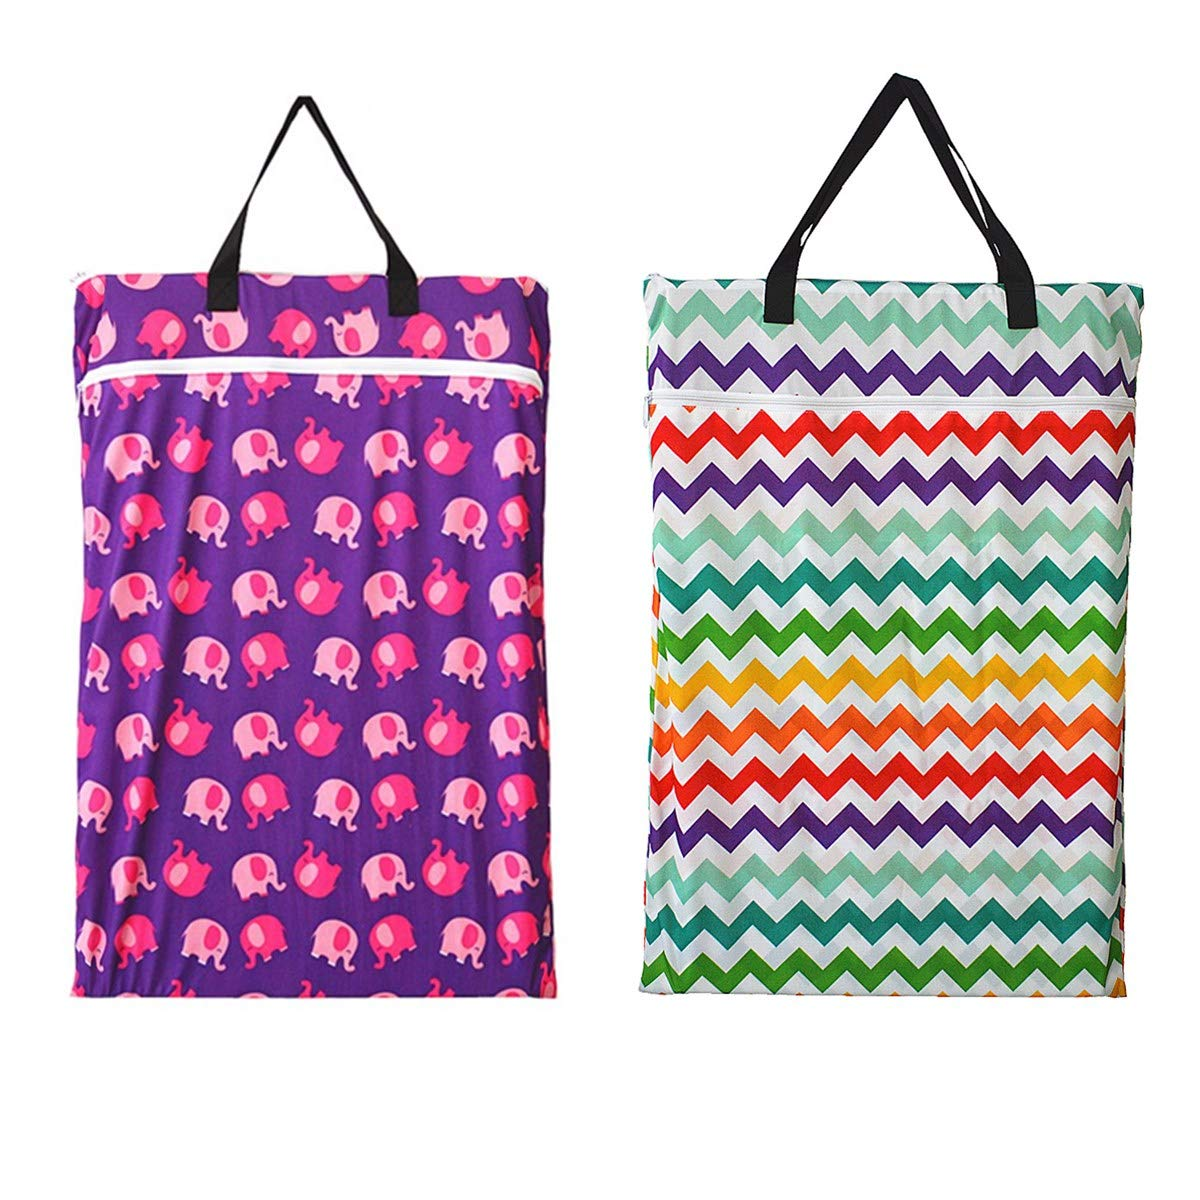 Grey Chevron 2 Pack Large Hanging Wet Bags Laundry Pail Bags Cloth Diapers Reusable